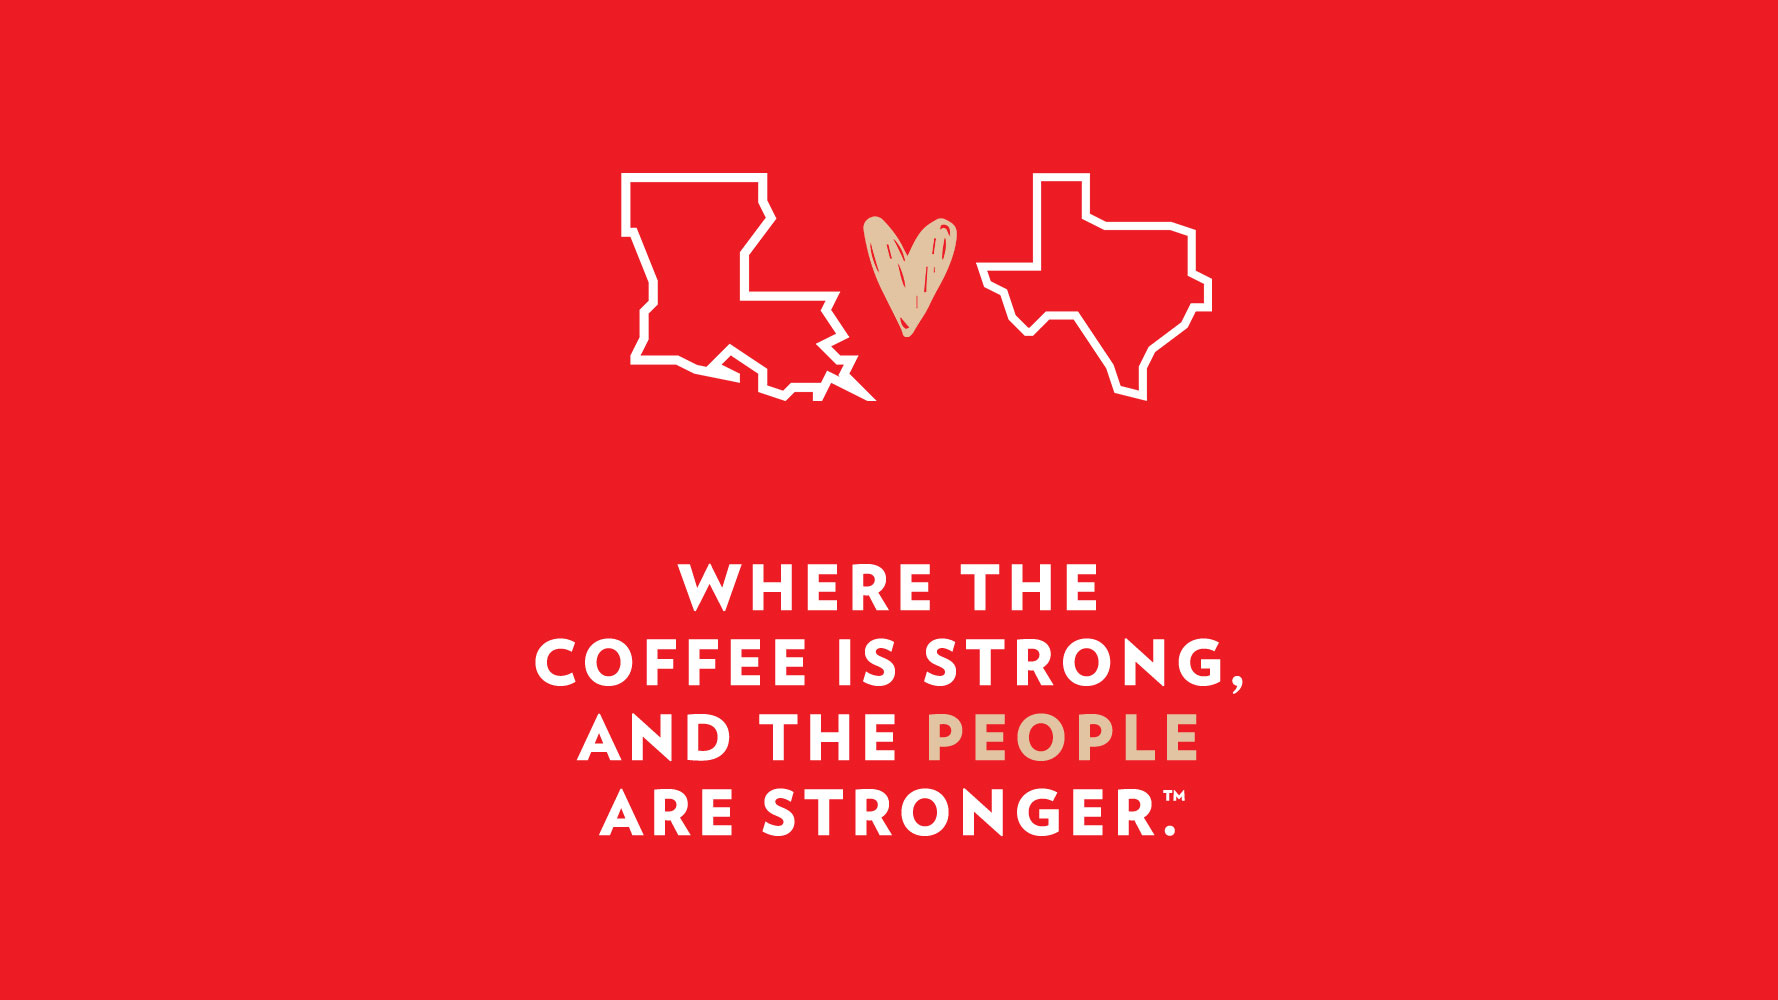 Where the coffee is strong and the people are stronger graphic